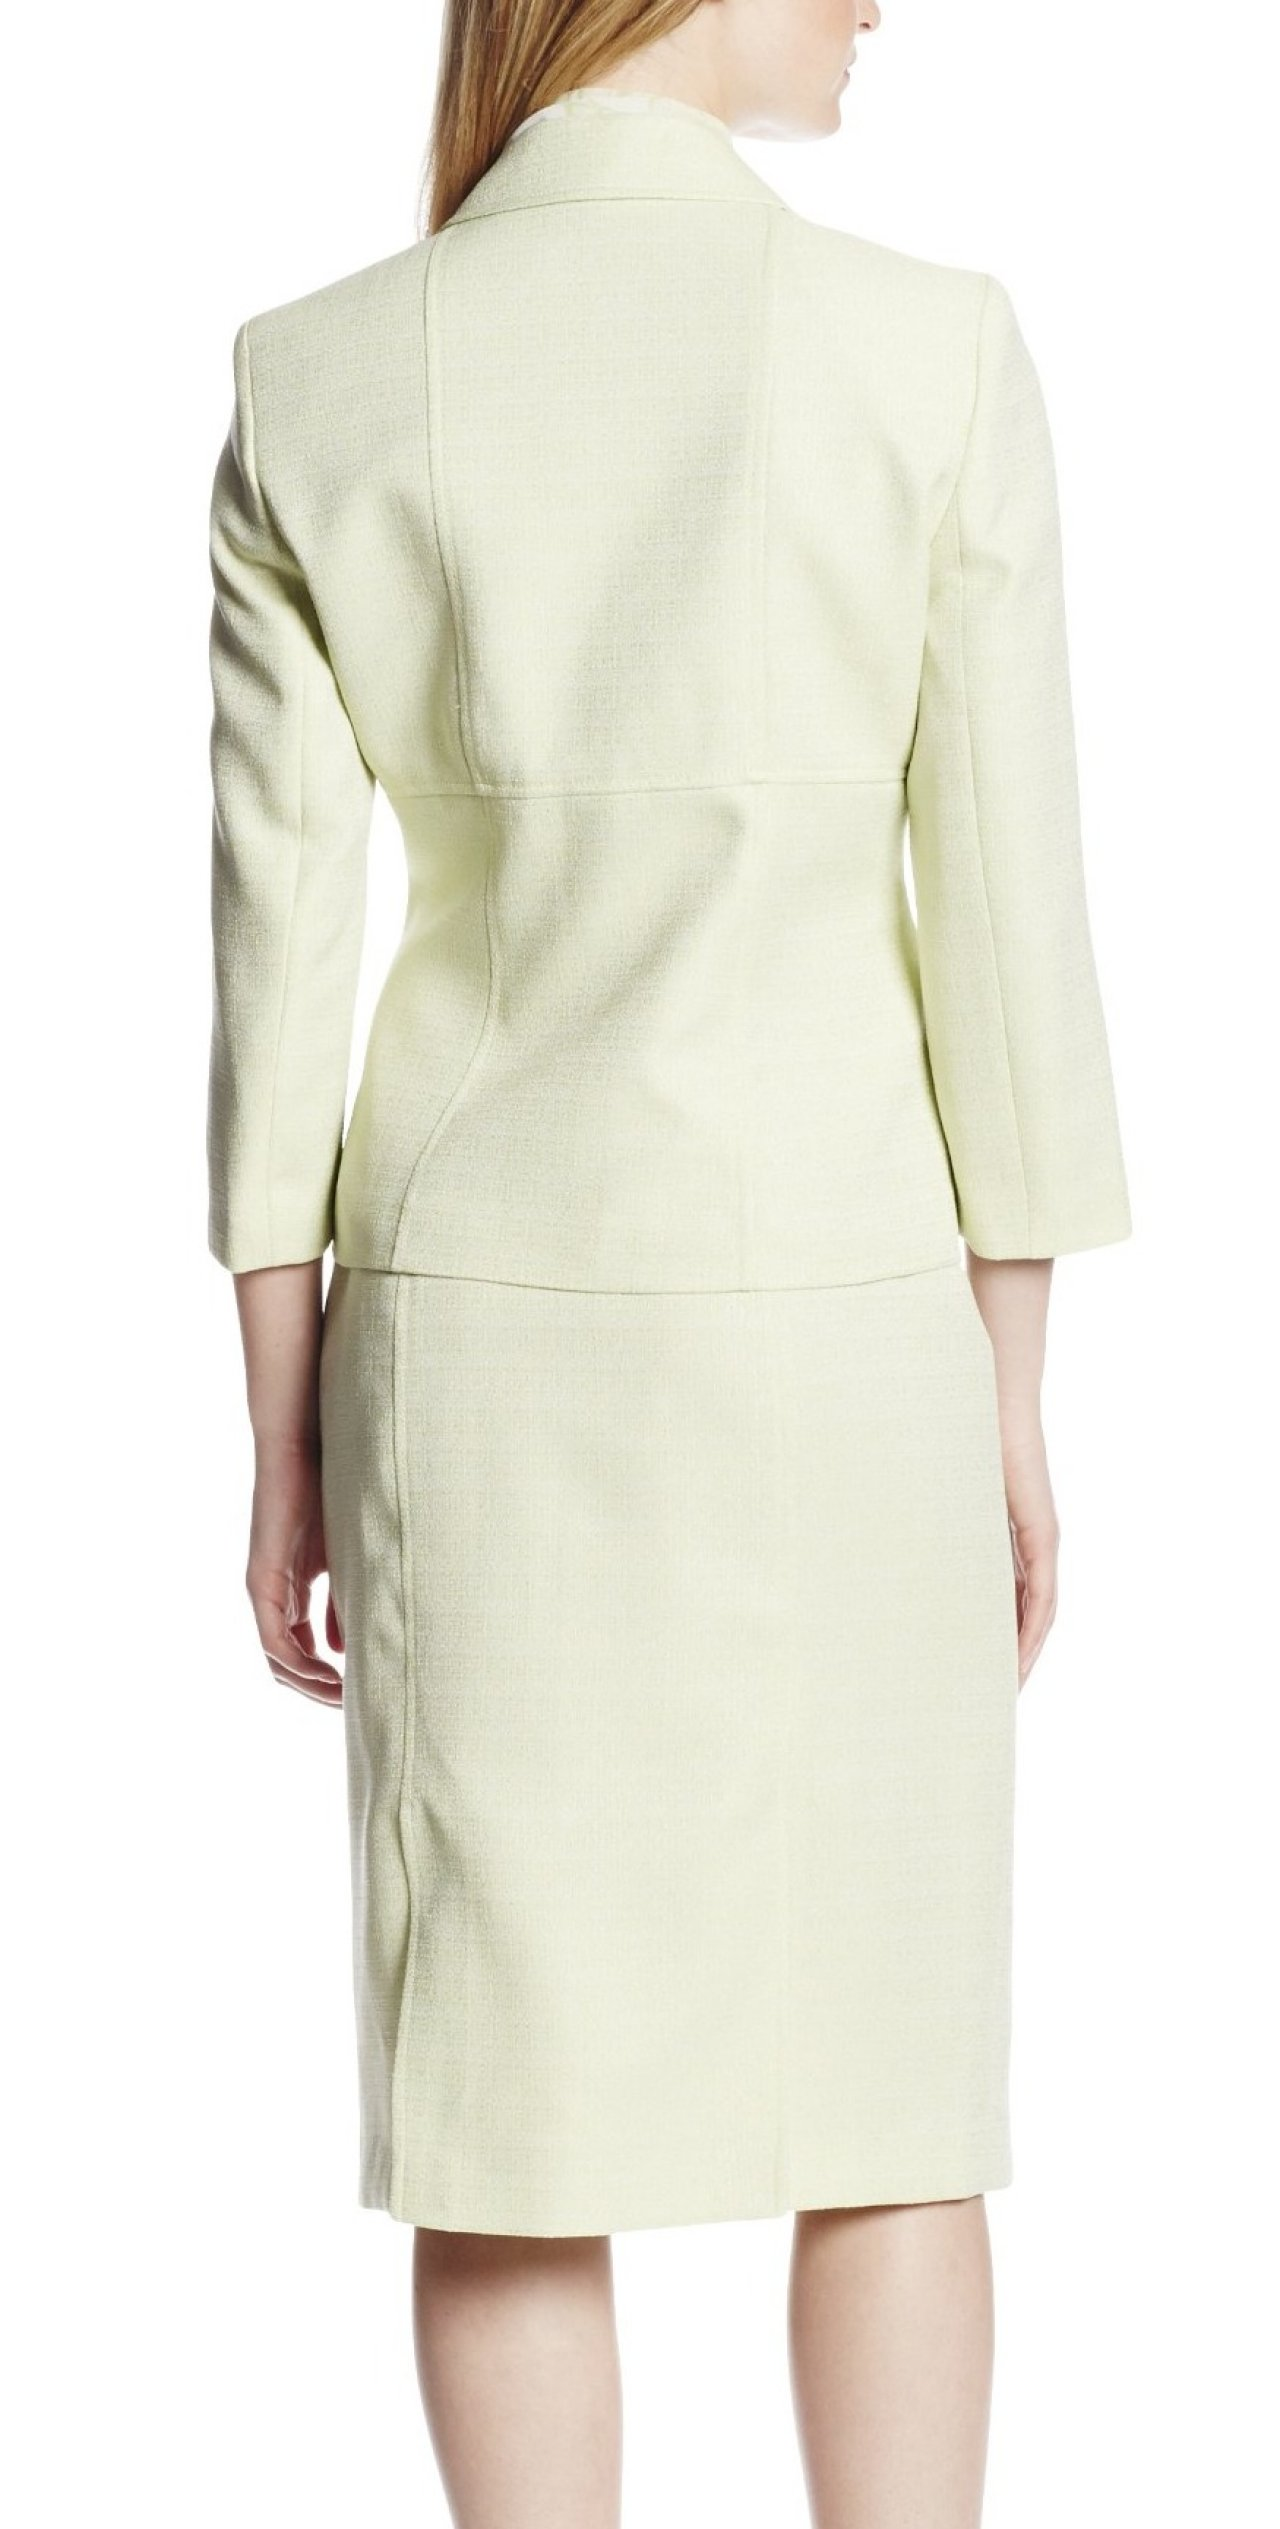 Le Suit New Green Lime Tweed Women S 18 Textured Seamed